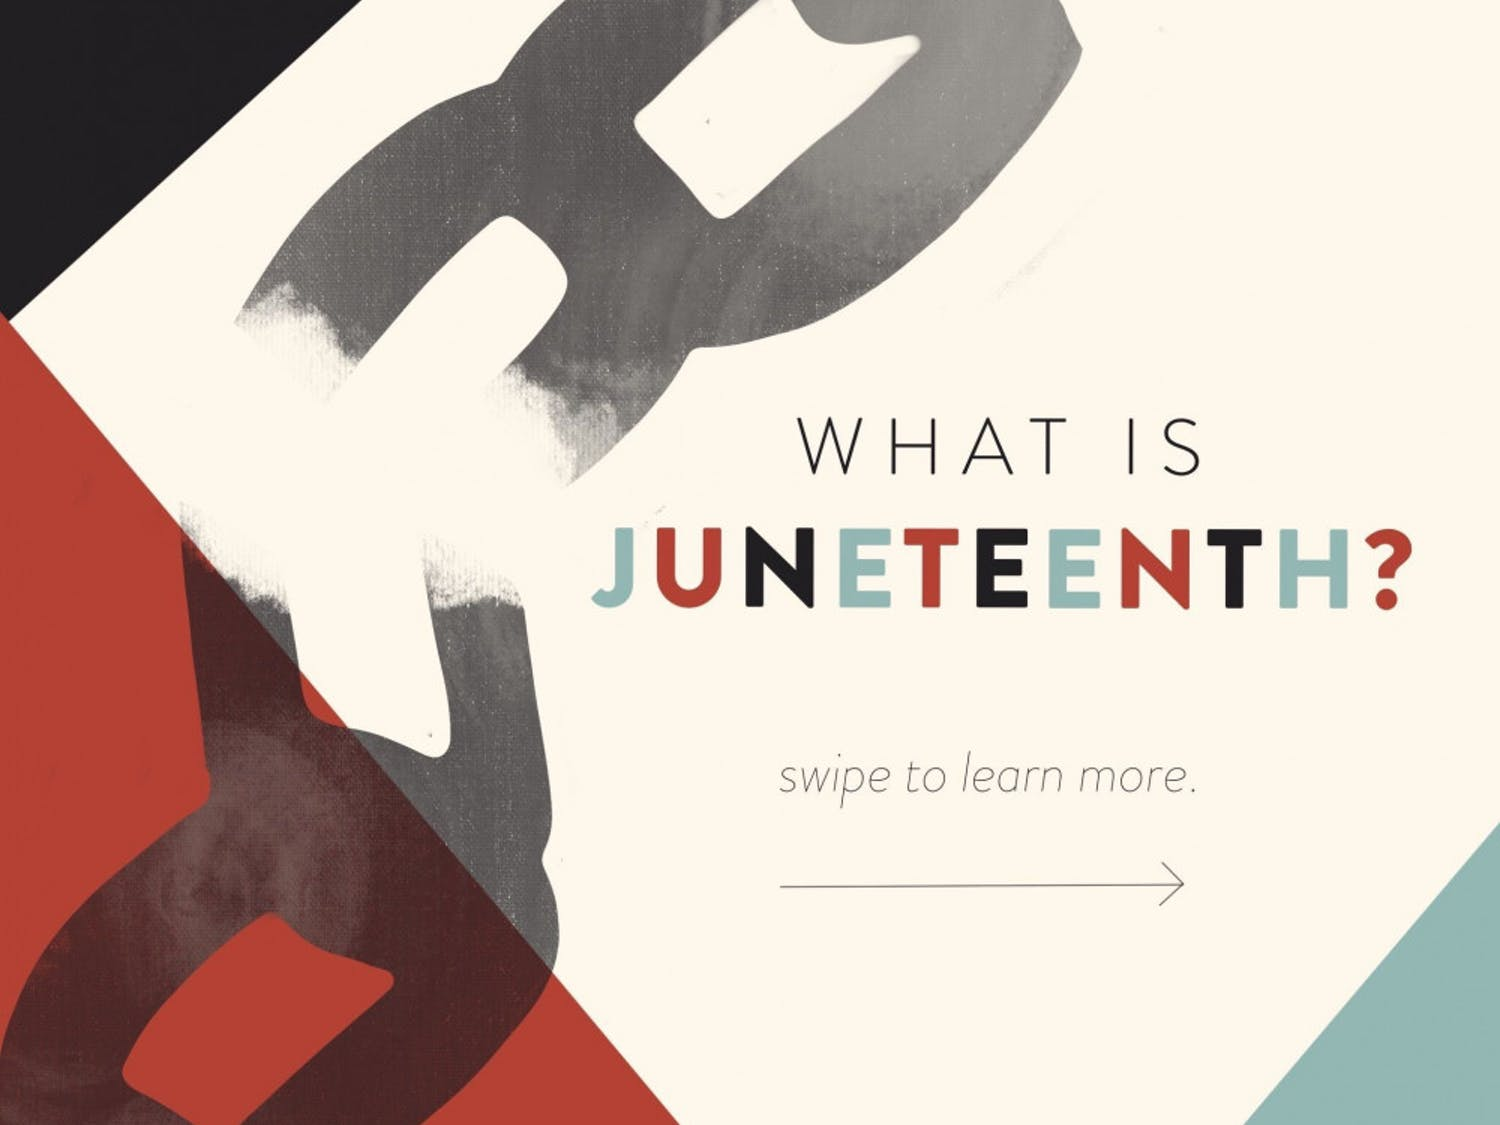 Today, we observe and celebrate Juneteenth. Juneteenth represents an end to slavery in the U.S.—two and a half years after the Emancipation Proclamation. While Juneteenth is recognized as a holiday in Florida, it's not a federally recognized holiday.  The Alligator encourages all of its readers and followers to educate themselves on the holiday and the history of slavery in the U.S. 